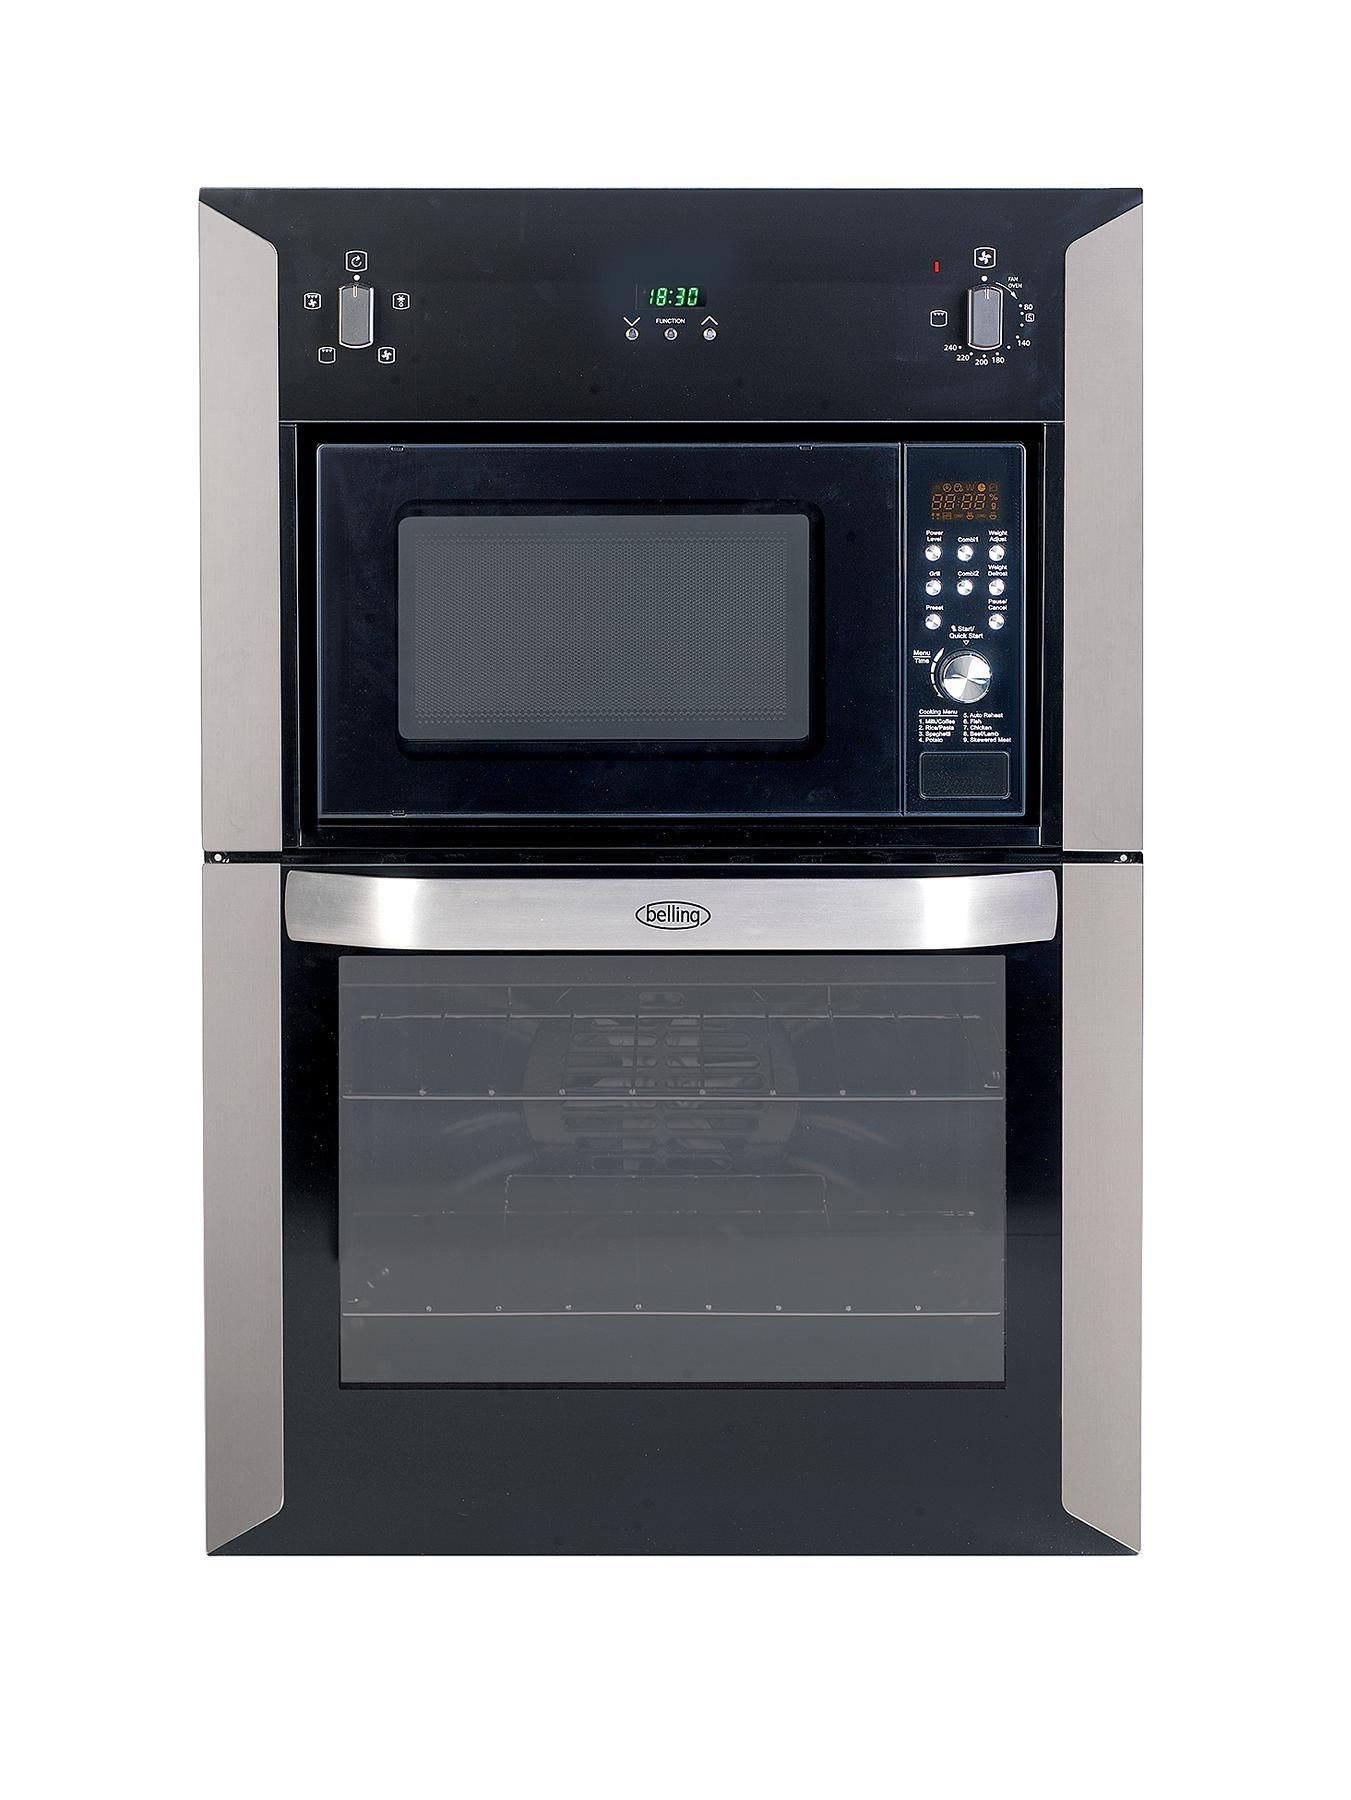 Microwave Ovens Stainless Steel Microwave Ovens General